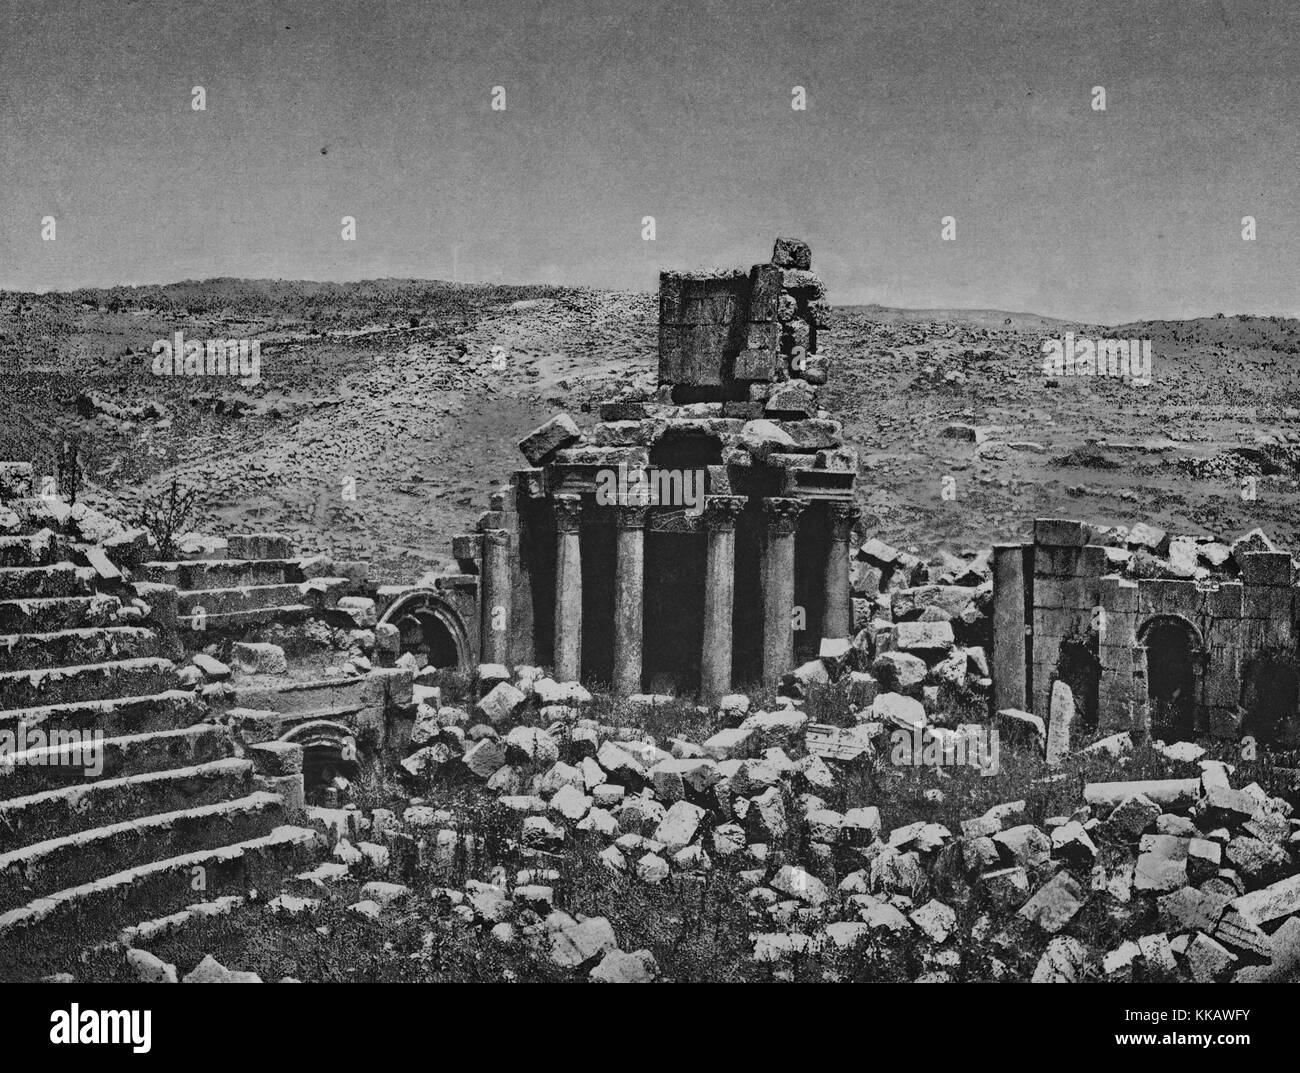 The ruins of the Roman portion of the city of Jerash, partial structures and columns are standing while large blocks - Stock Image